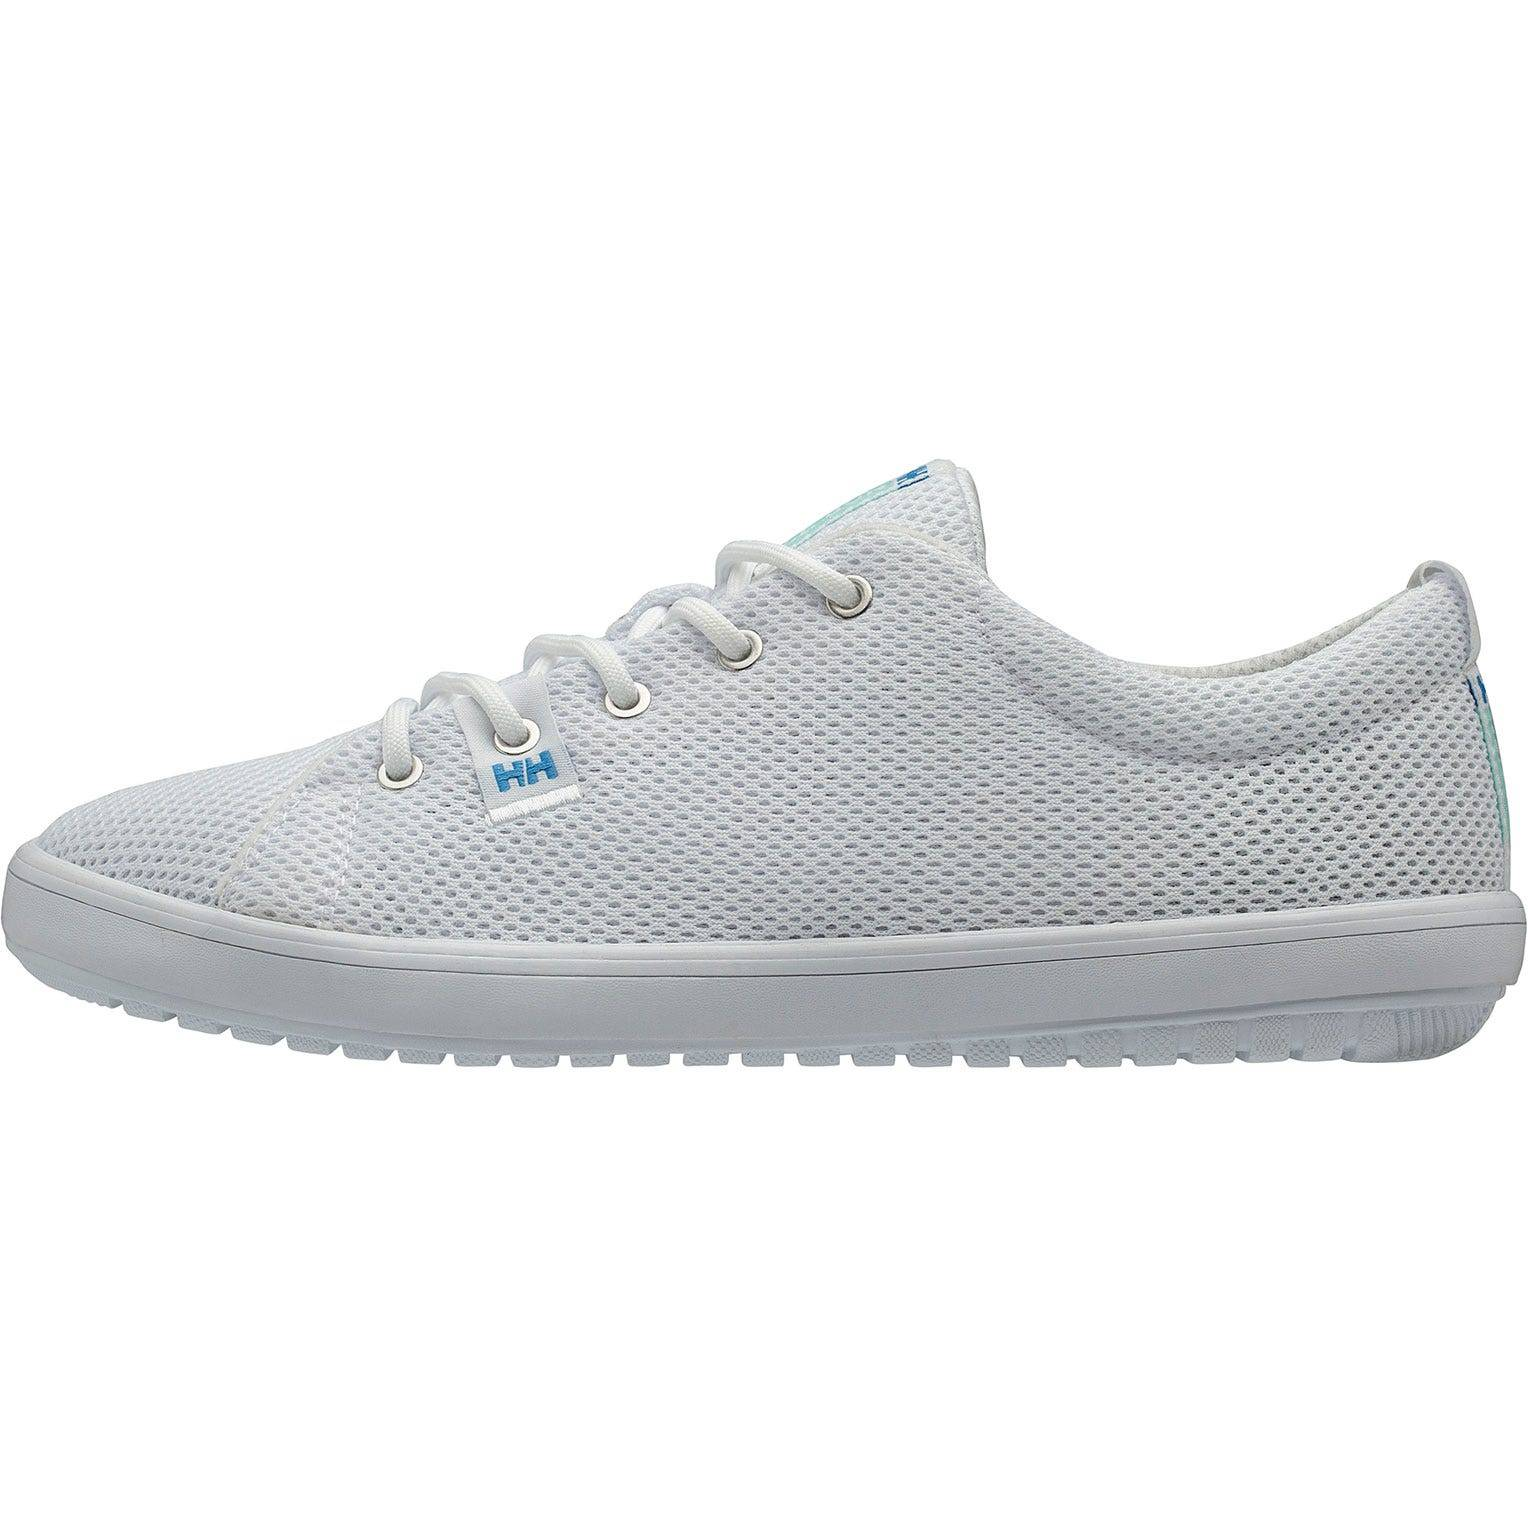 Helly Hansen W Scurry 2 Womens Casual Shoe White 36/5.5